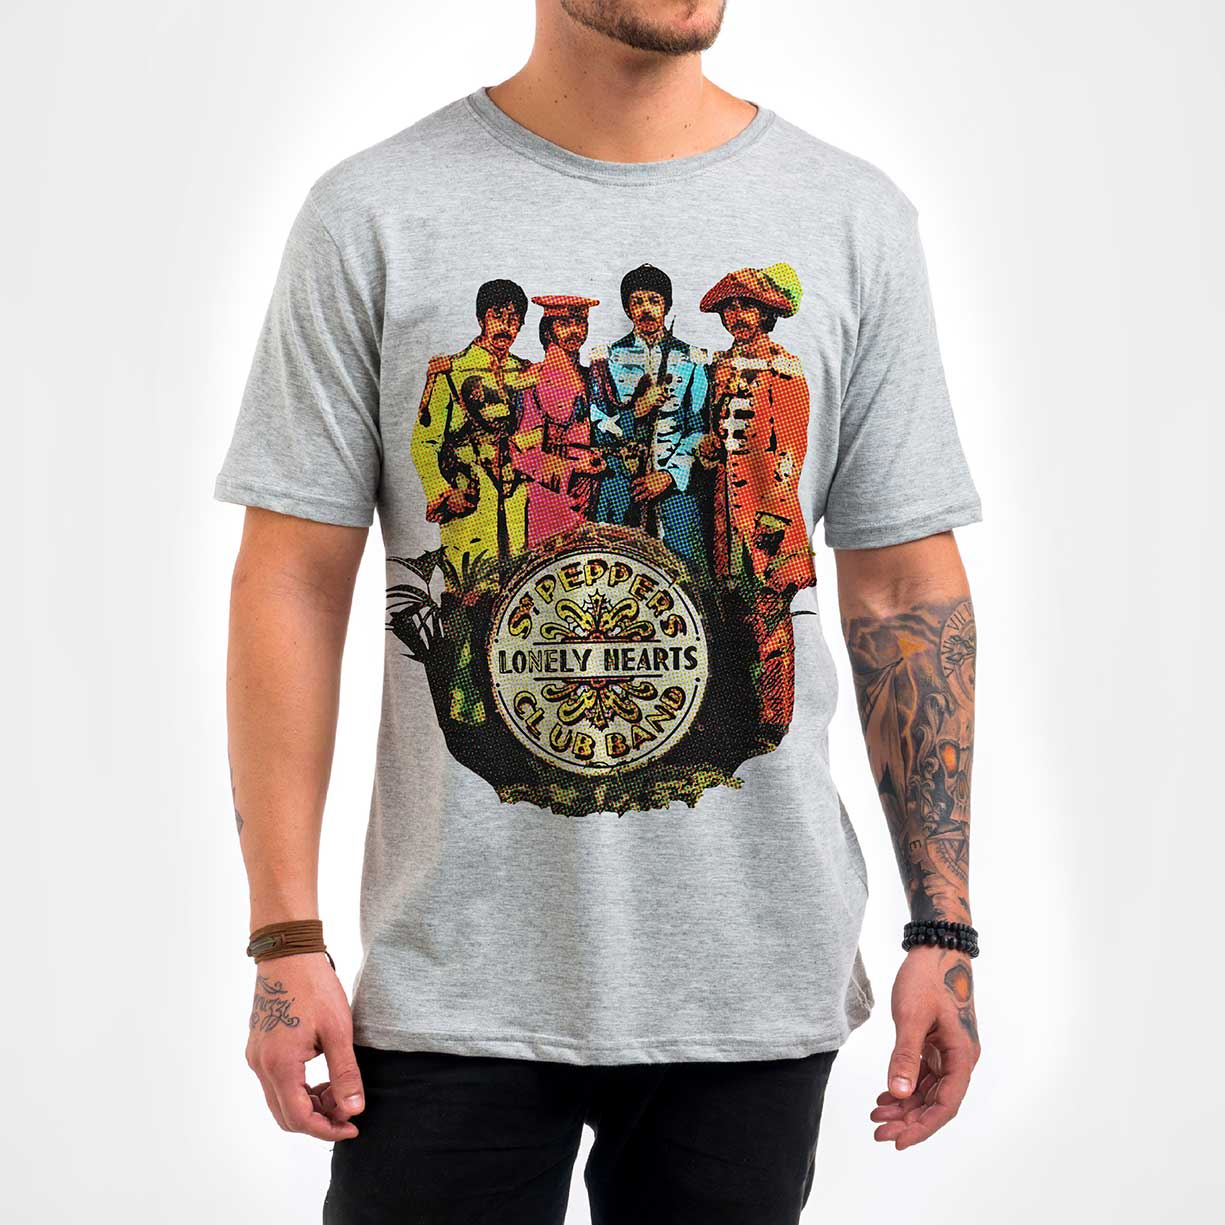 Camisa Masculina - Sgt Peppers